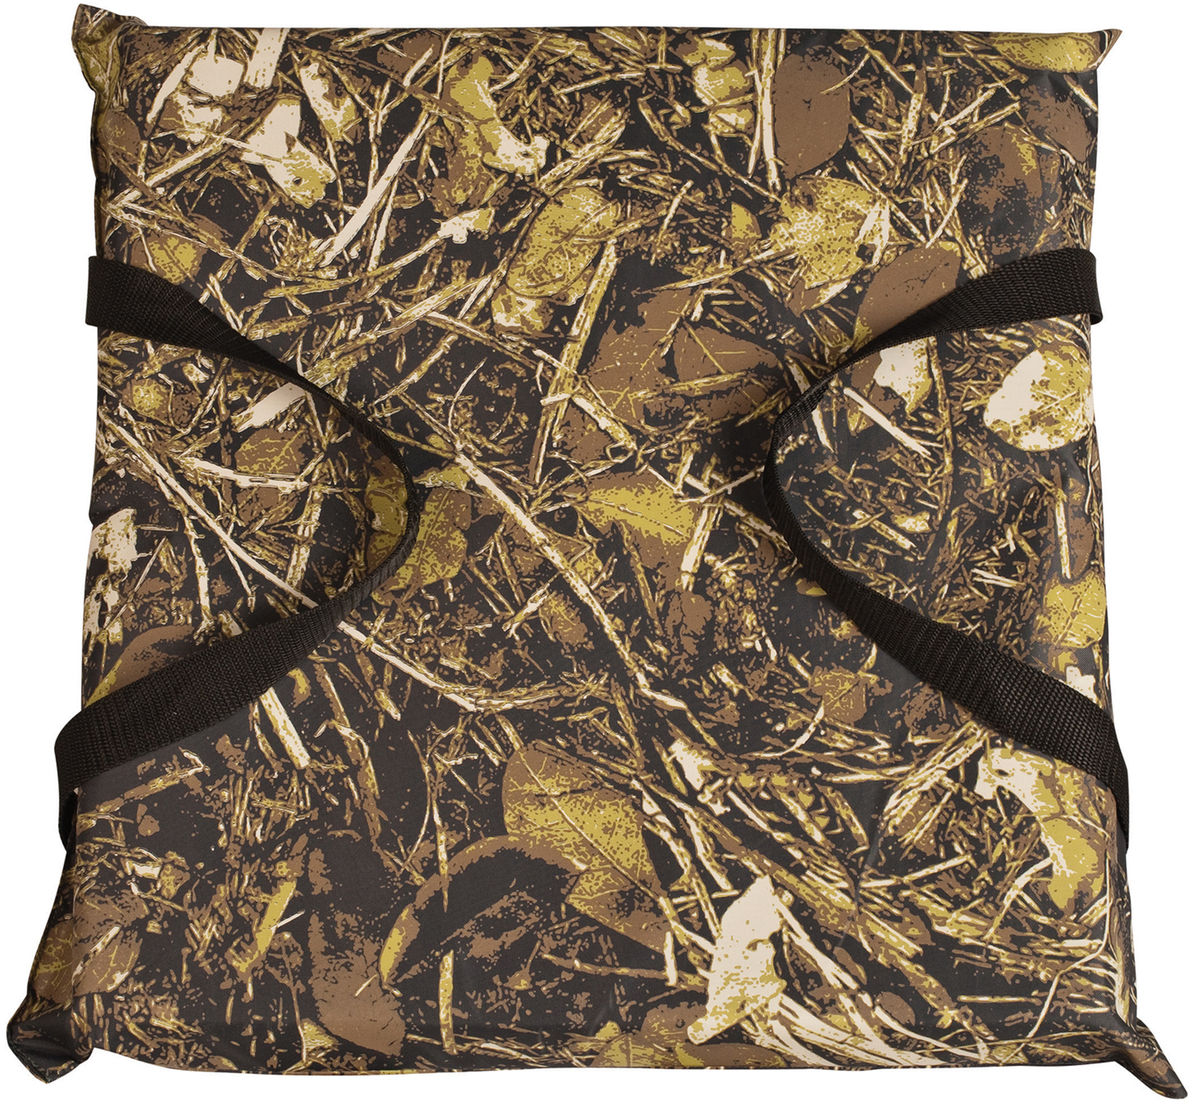 Overtons Type IV Boat Throw Cushion-763795 - Gander Mountain